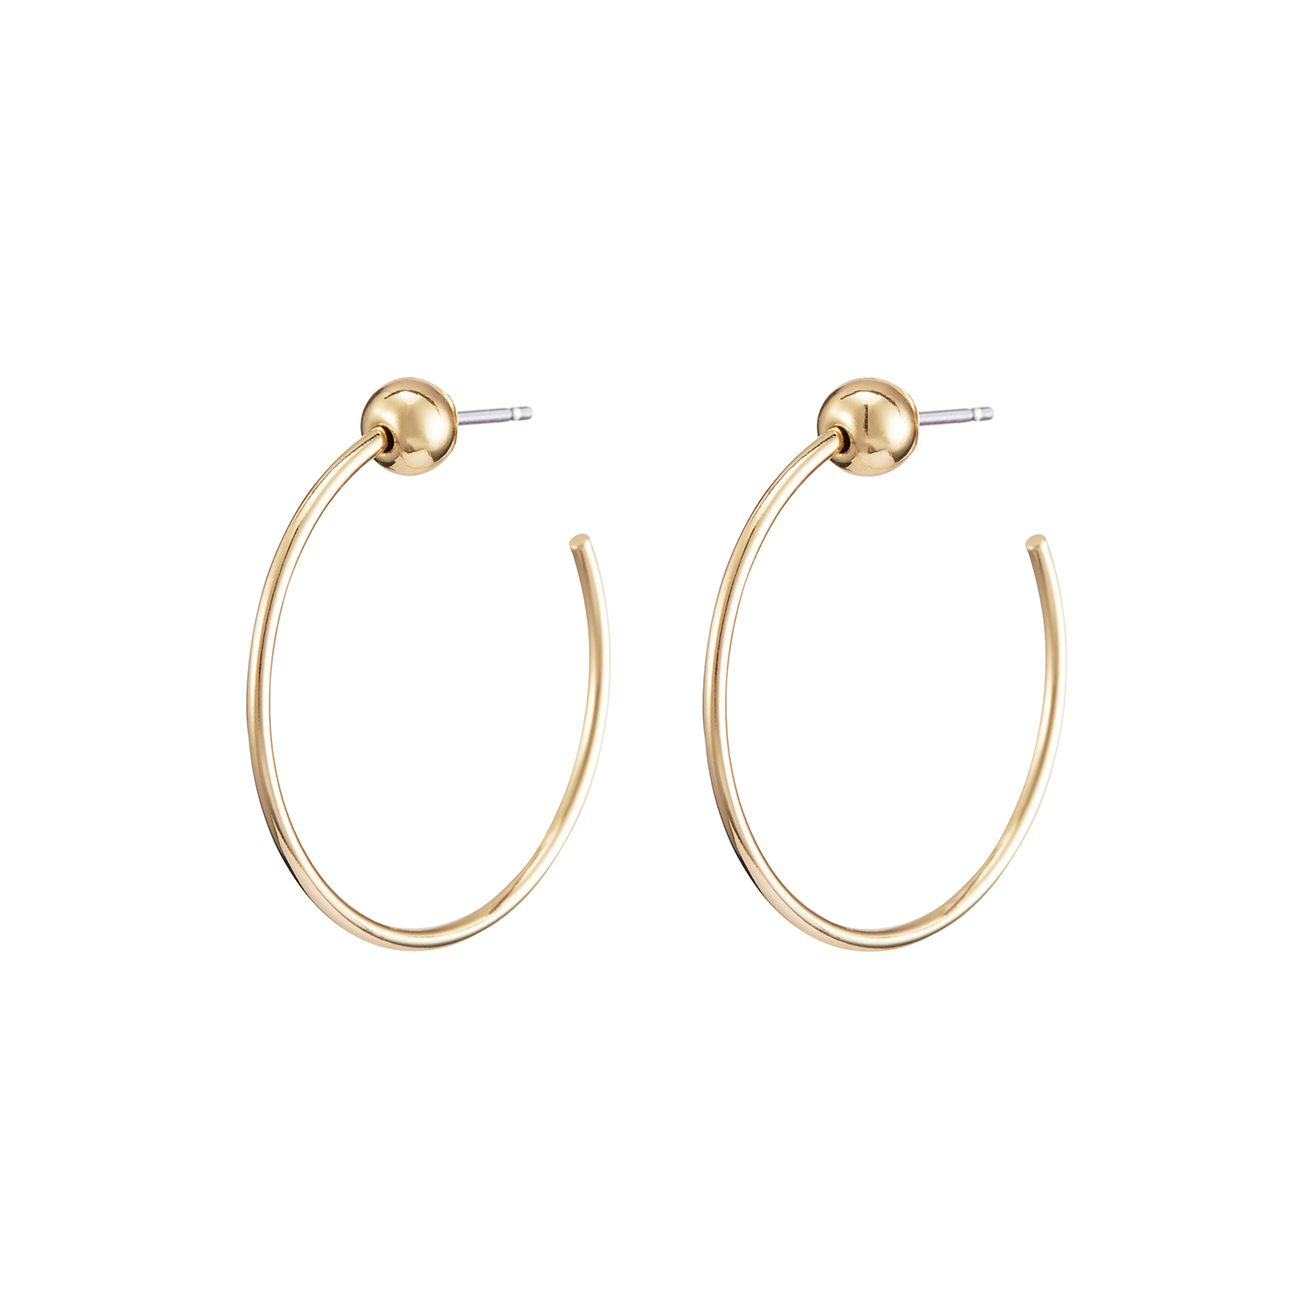 Extra small XS Icon Hoops earrings in Gold by JENNY BIRD